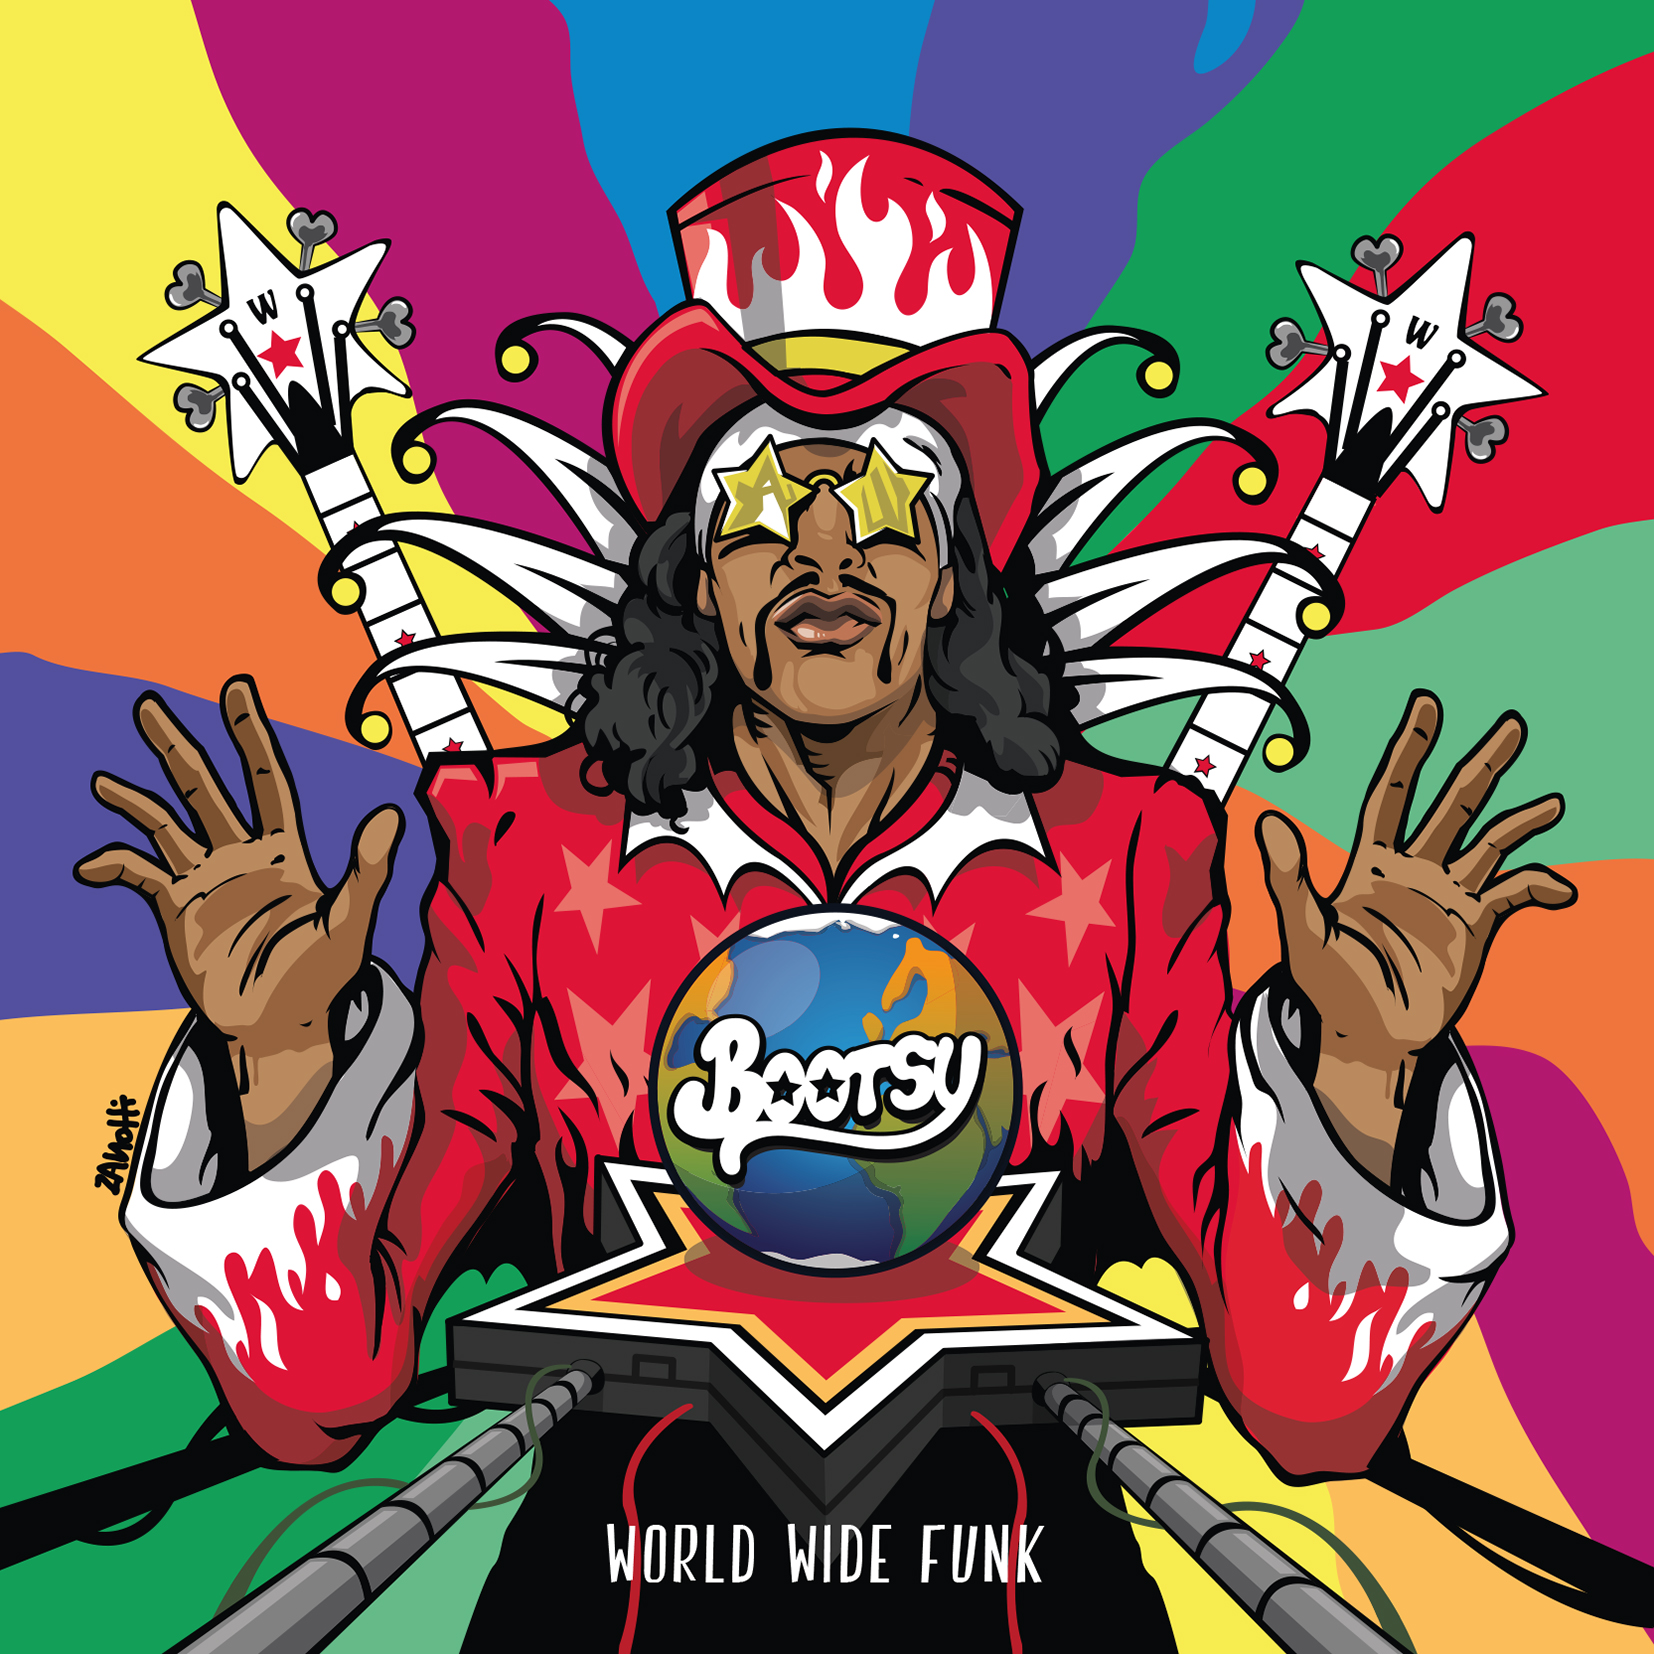 Bootsy Collins Capturing World Wide Funk